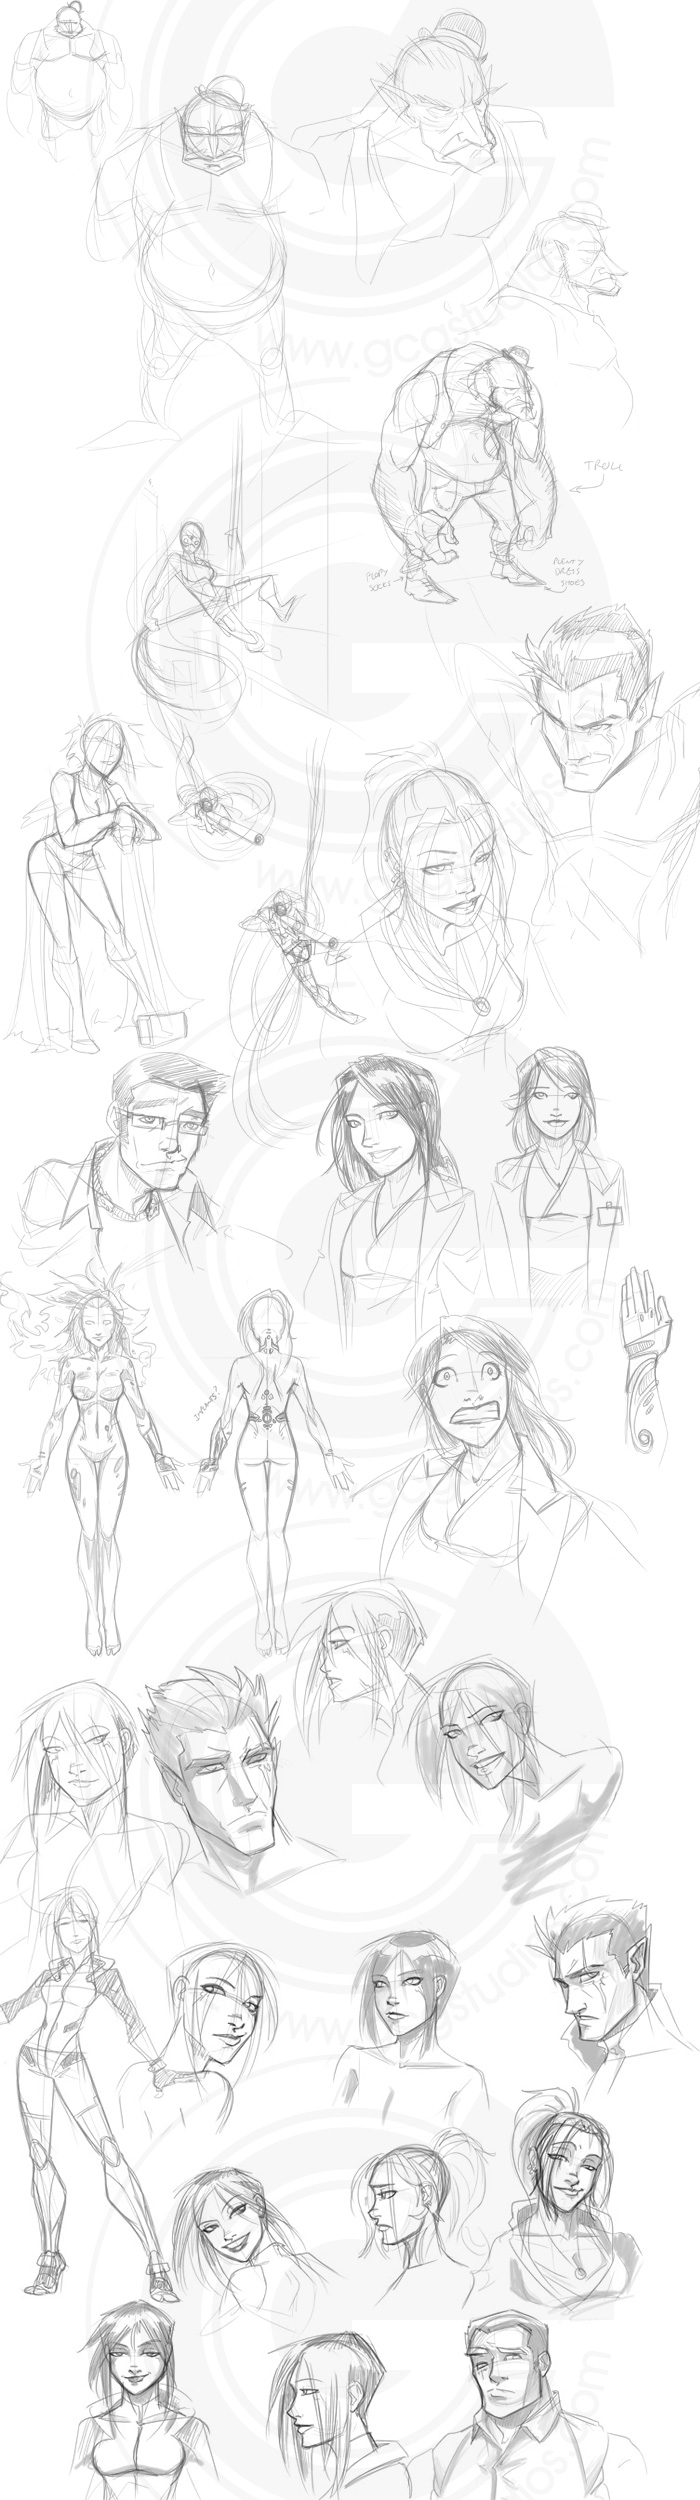 Sketch Dump by GarthFT